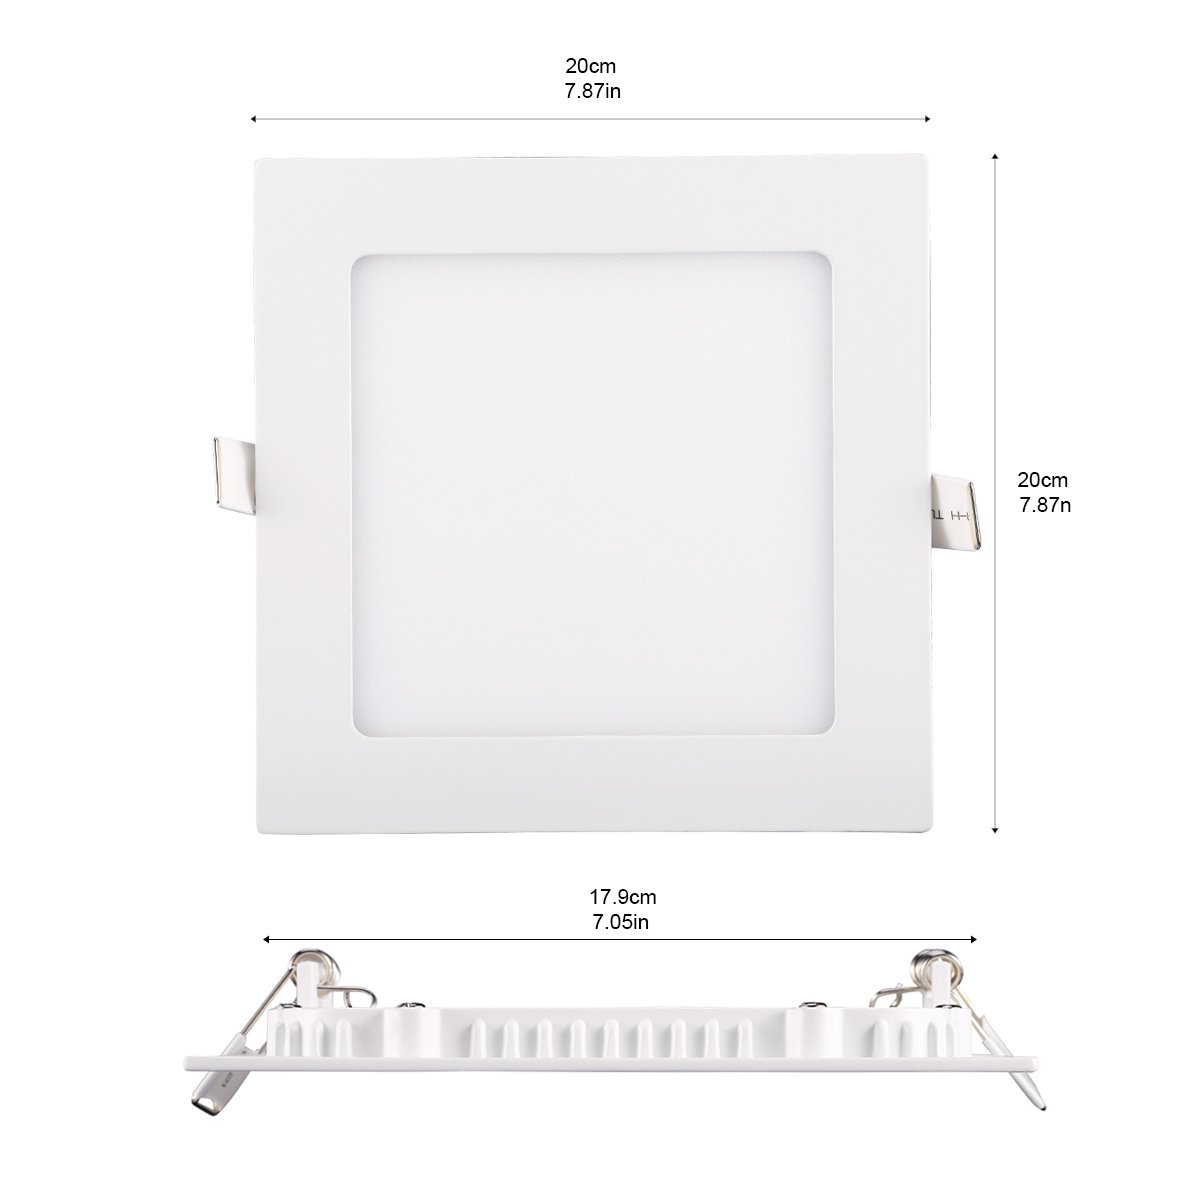 Amazon.com: b-right LED cuadrado empotrable PANEL de Luz ...